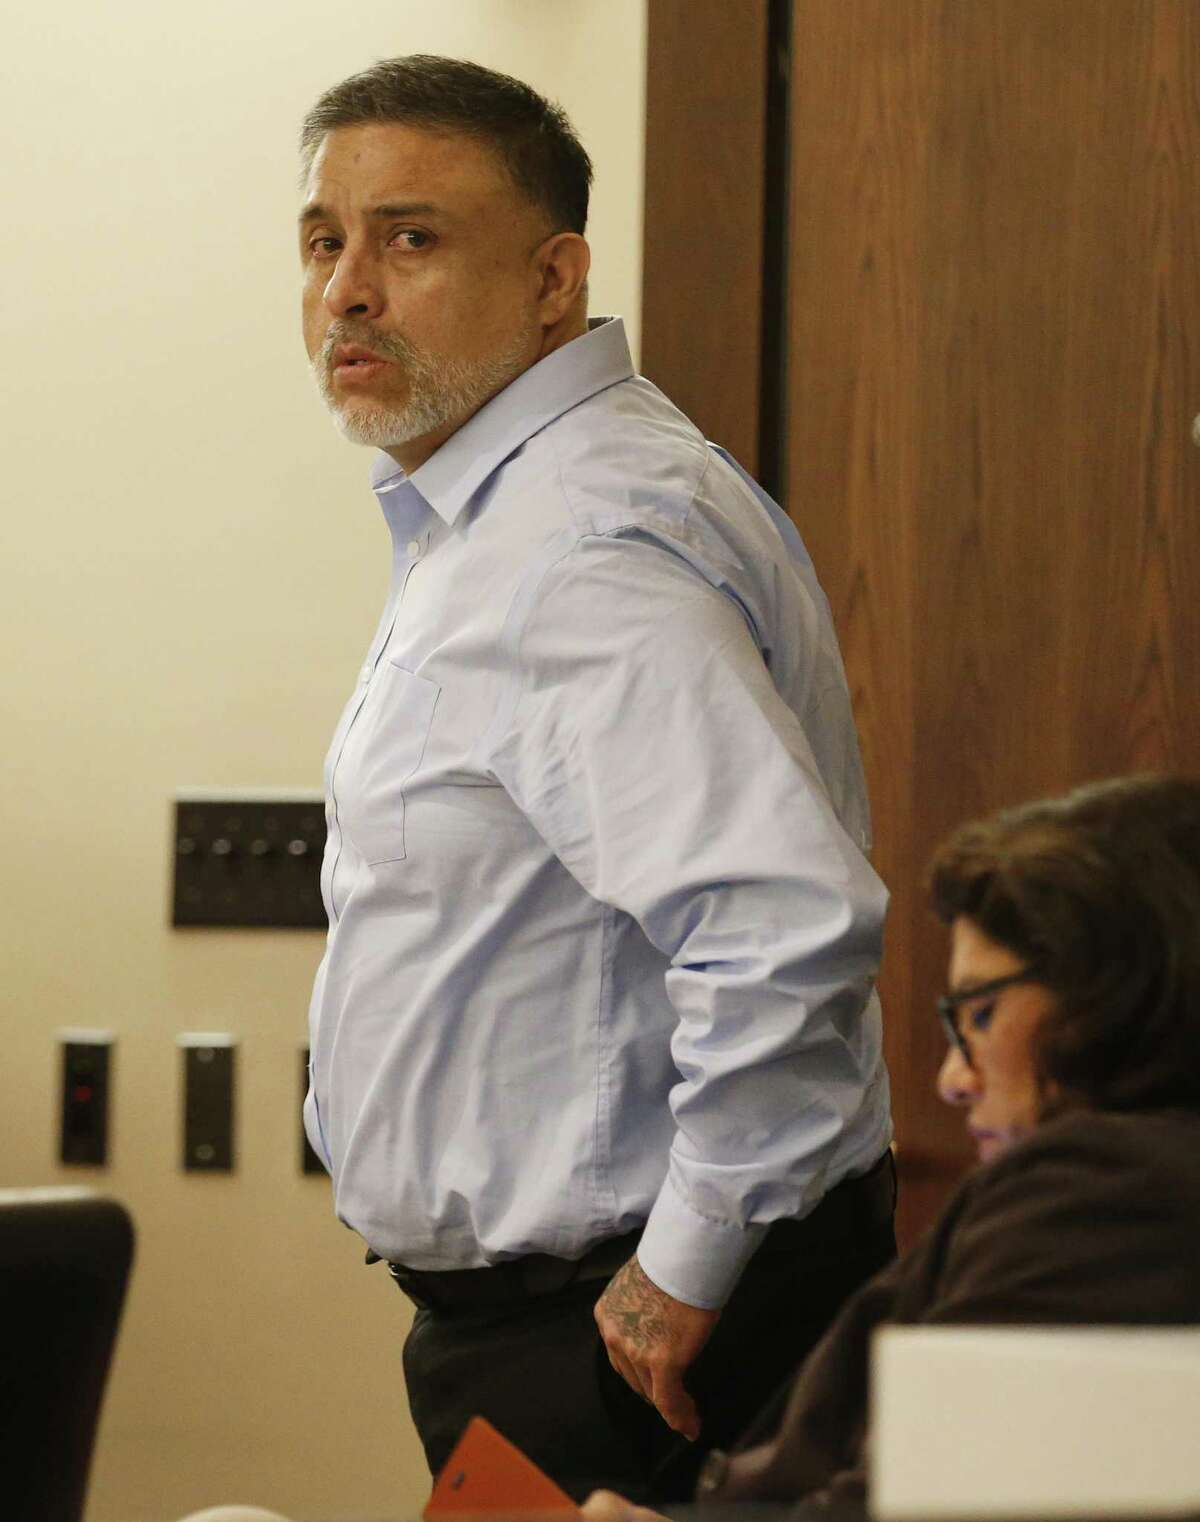 Testimony continues in the murder trial of Joel Soto (pictured), accused of setting a fire in his pickup to hide the fact that his two-year-old grandson, Jeremy Soto, was already dead, possibly from ingesting methamphetamine. The trial continued in 379th state District Court, presided by Judge Ron Rangel at Cadena-Reeves Justice Center on Thursday, June 8, 2017. (Kin Man Hui/San Antonio Express-News)